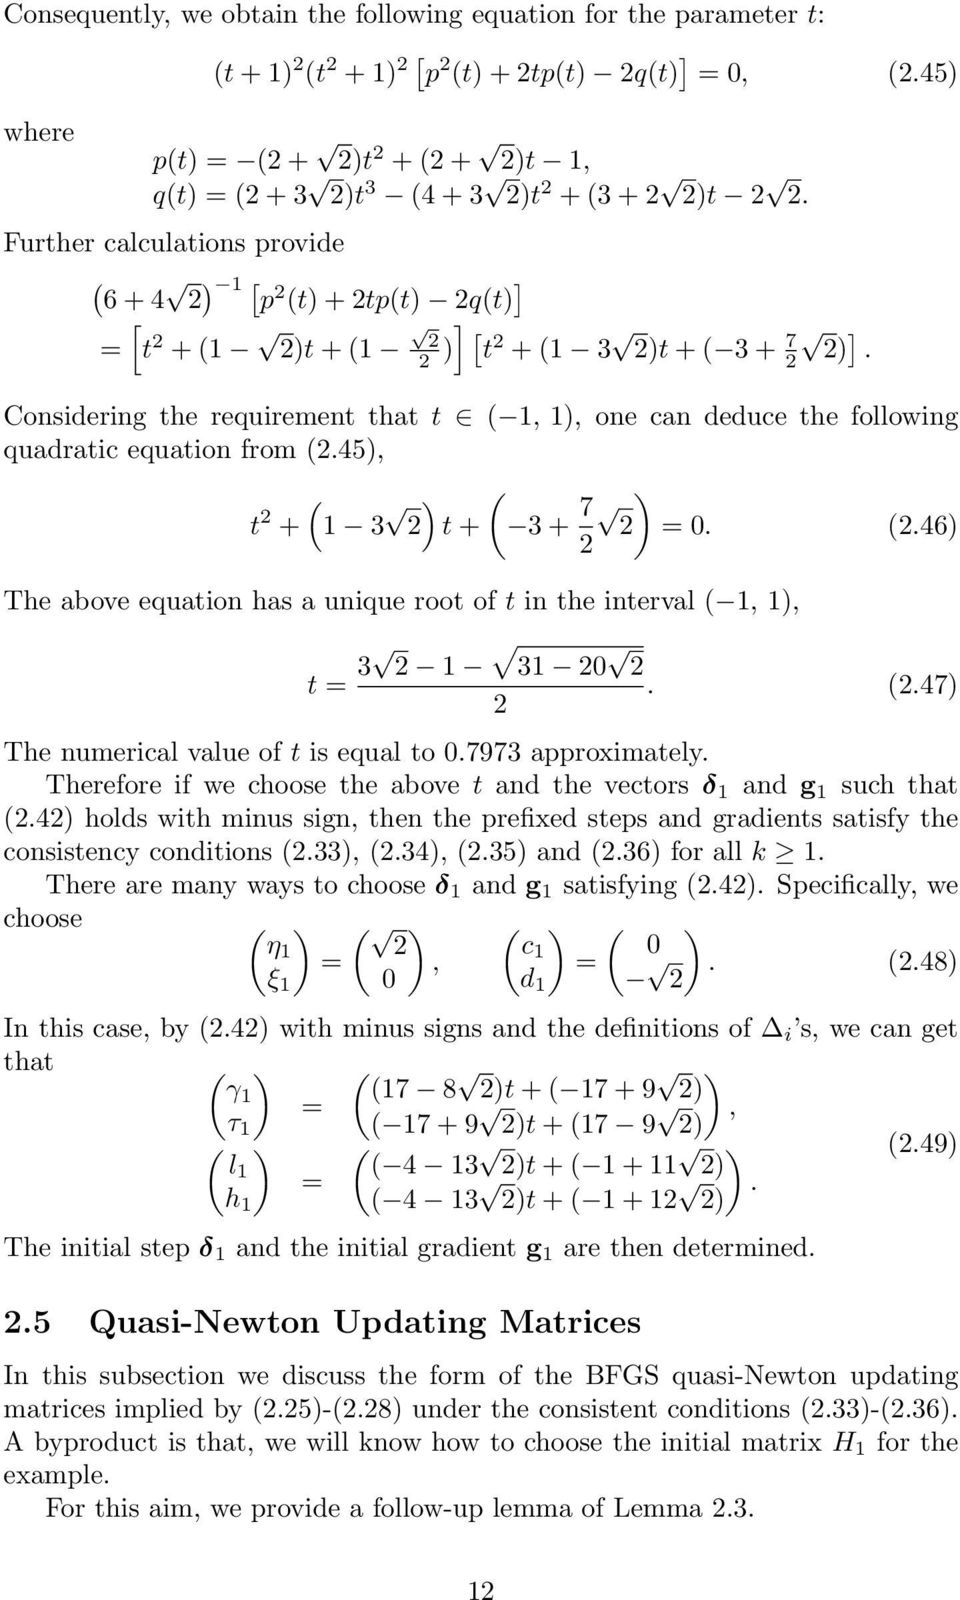 Considering the requirement that t ( 1, 1, one can deduce the following quadratic equation from (.45, ( t + 1 3 ( t + 3 + 7 = 0. (.46 The above equation has a unique root of t in the interval ( 1, 1, t = 3 1 31 0.